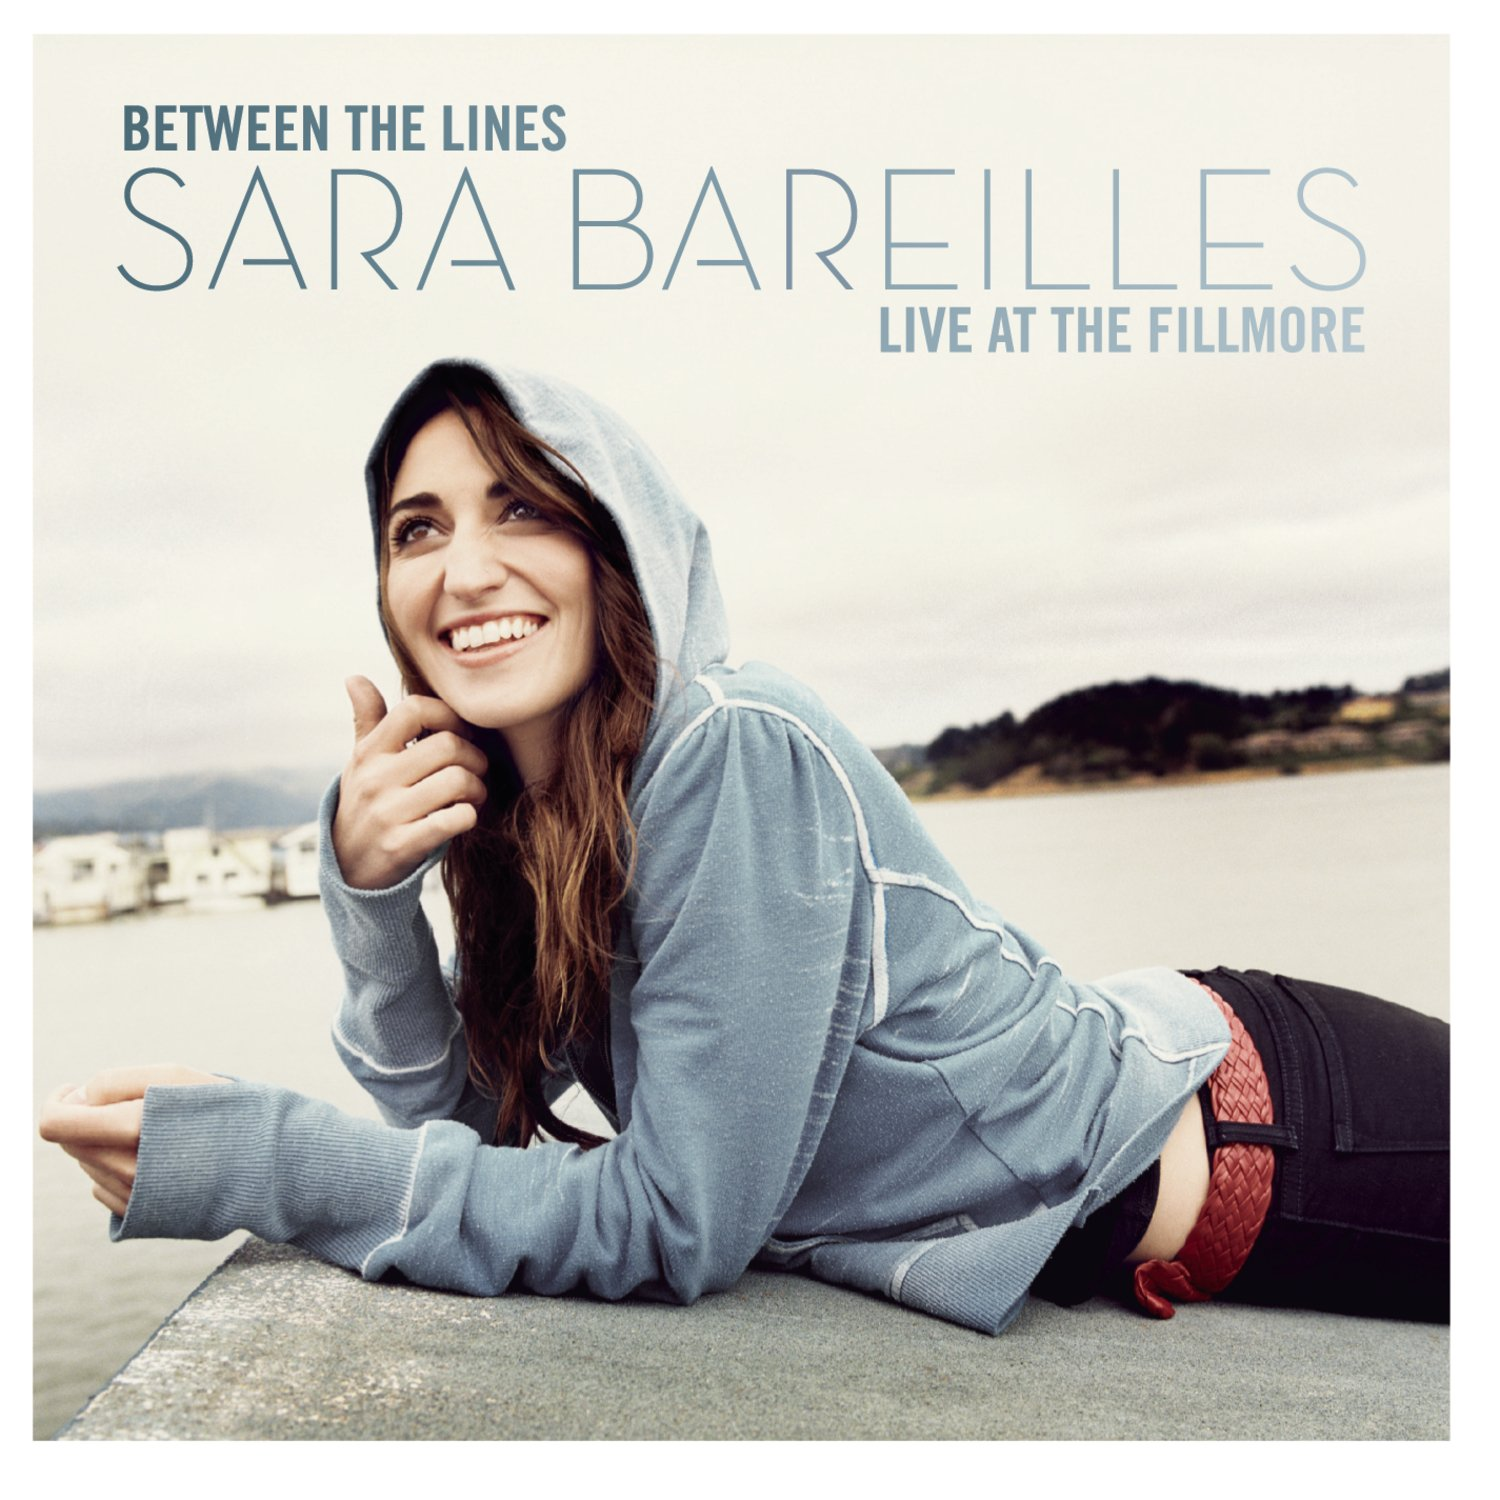 Between the Lines: Sara Bareilles - Live at the Fillmore (DVD + CD) by Epic